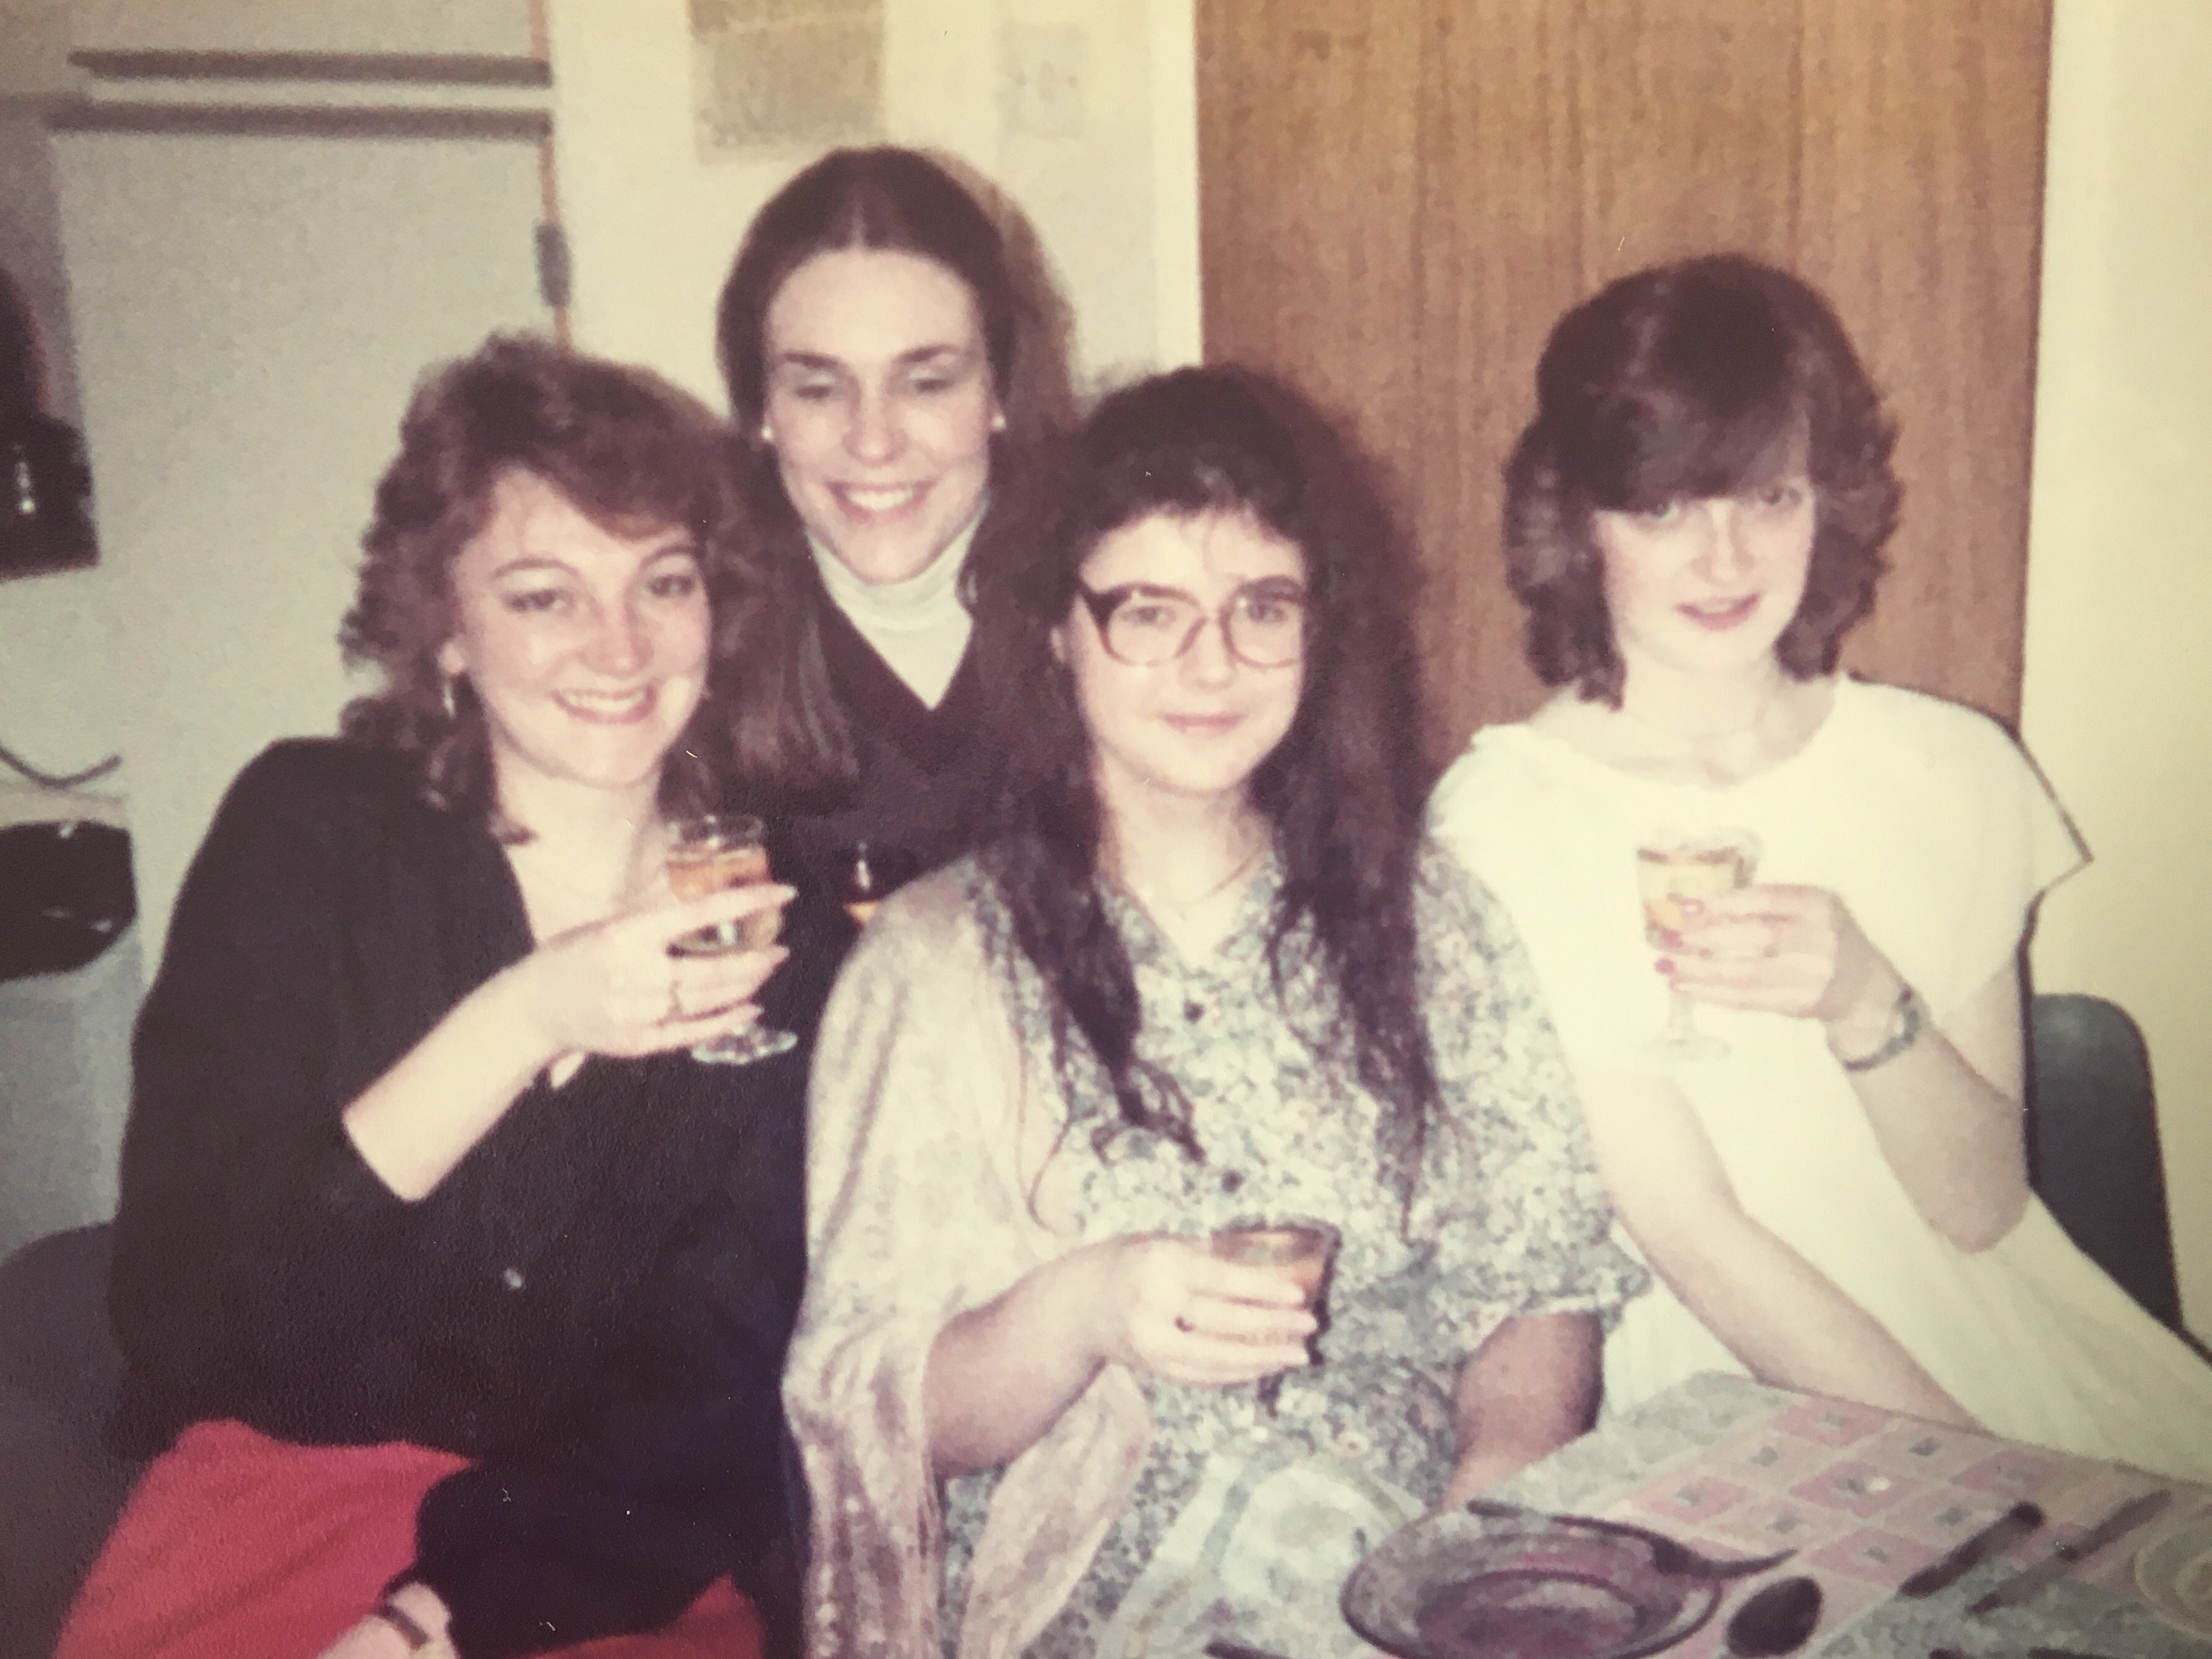 Four friends holding drinks together in the 80's